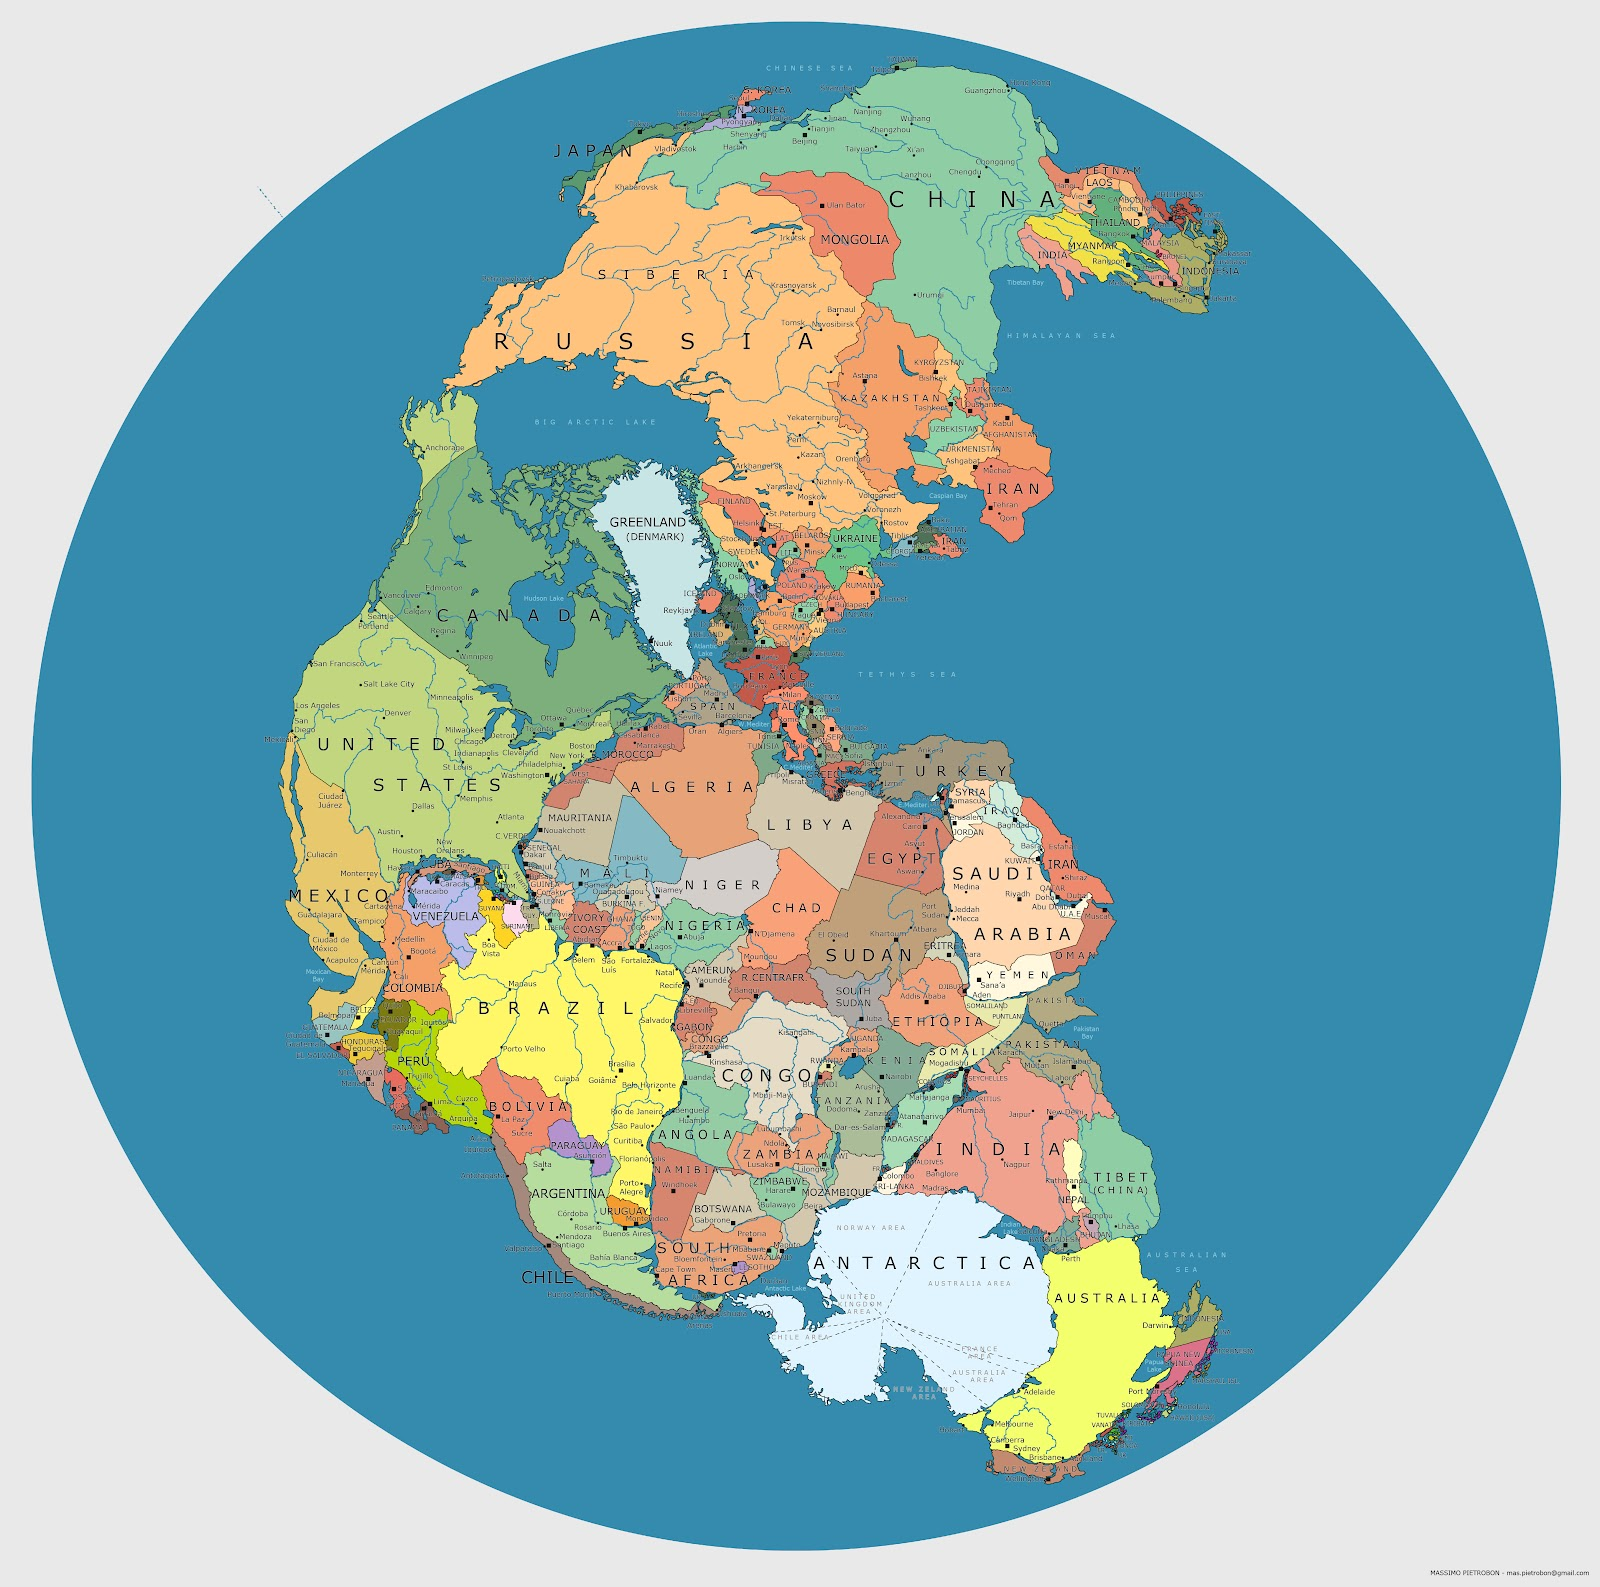 Map Showing Where Today's Countries Would Be Located on Pangaea